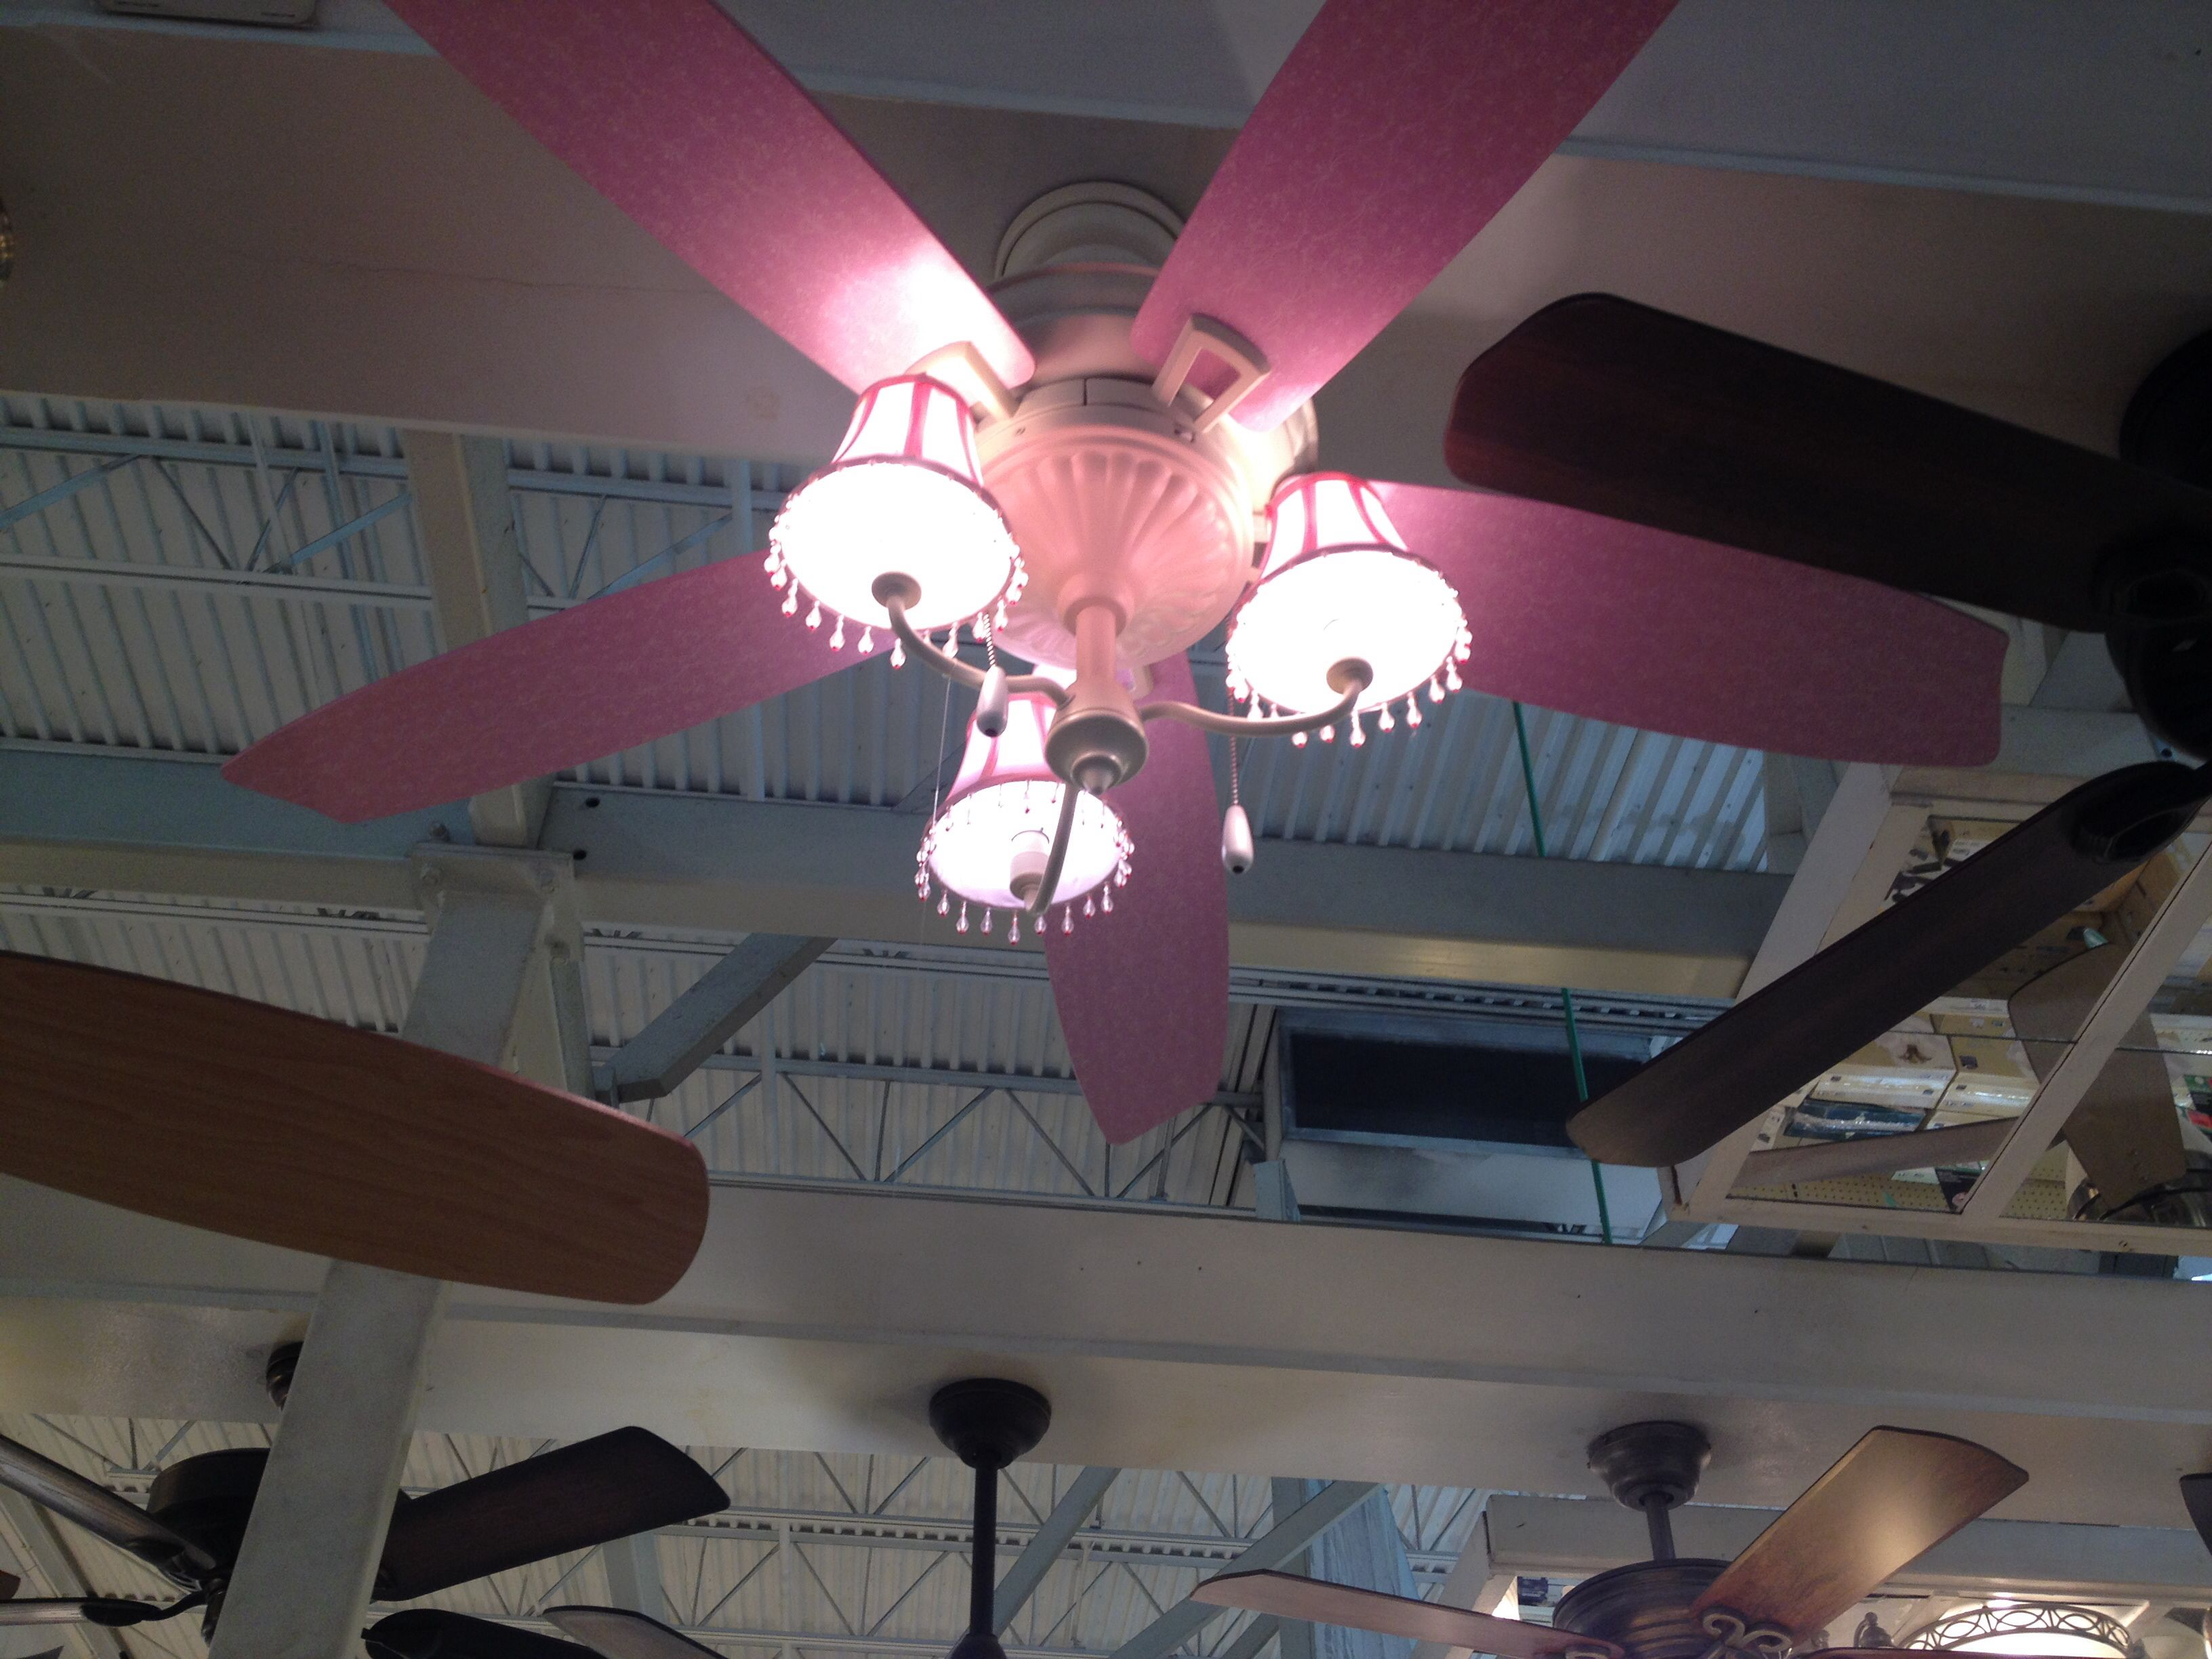 of for ceiling room vintage with quiet full large great size bedroom cool control fans kids fan outdoor white light remote ceilings living perth on sale